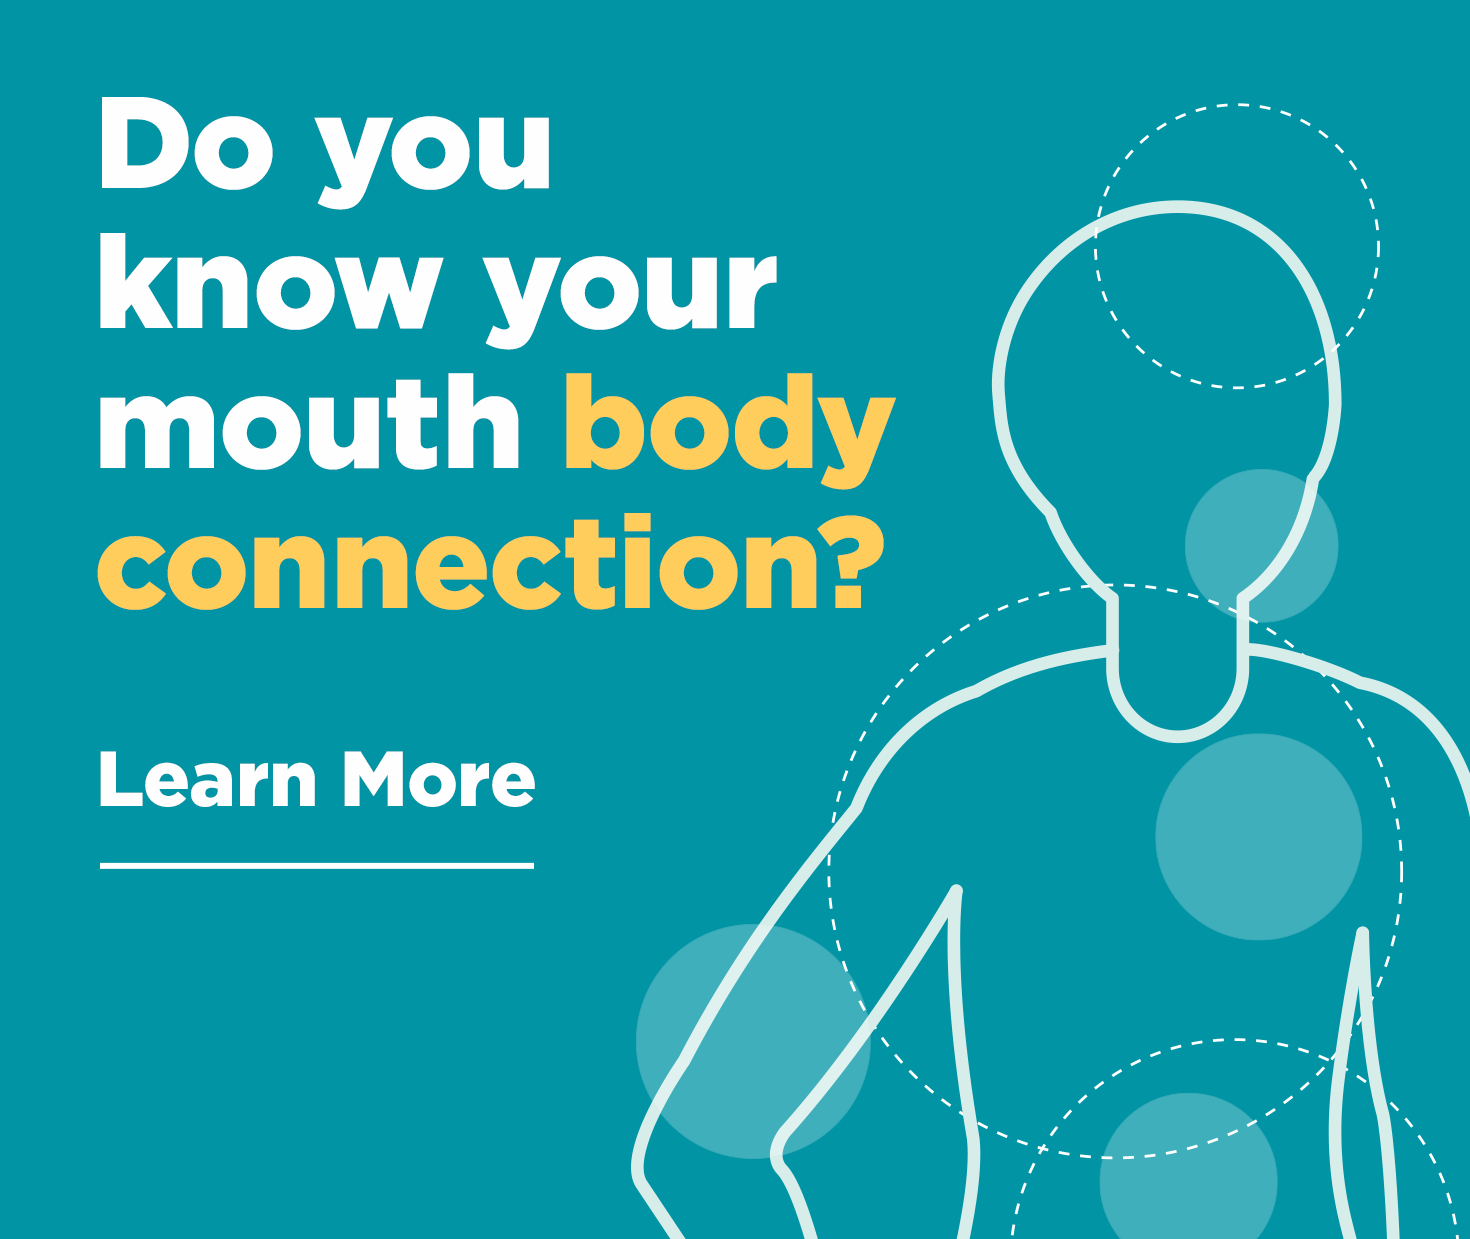 Do you know your mouth body connection? Learn More. - Highlands Modern Dentistry and Orthodontics